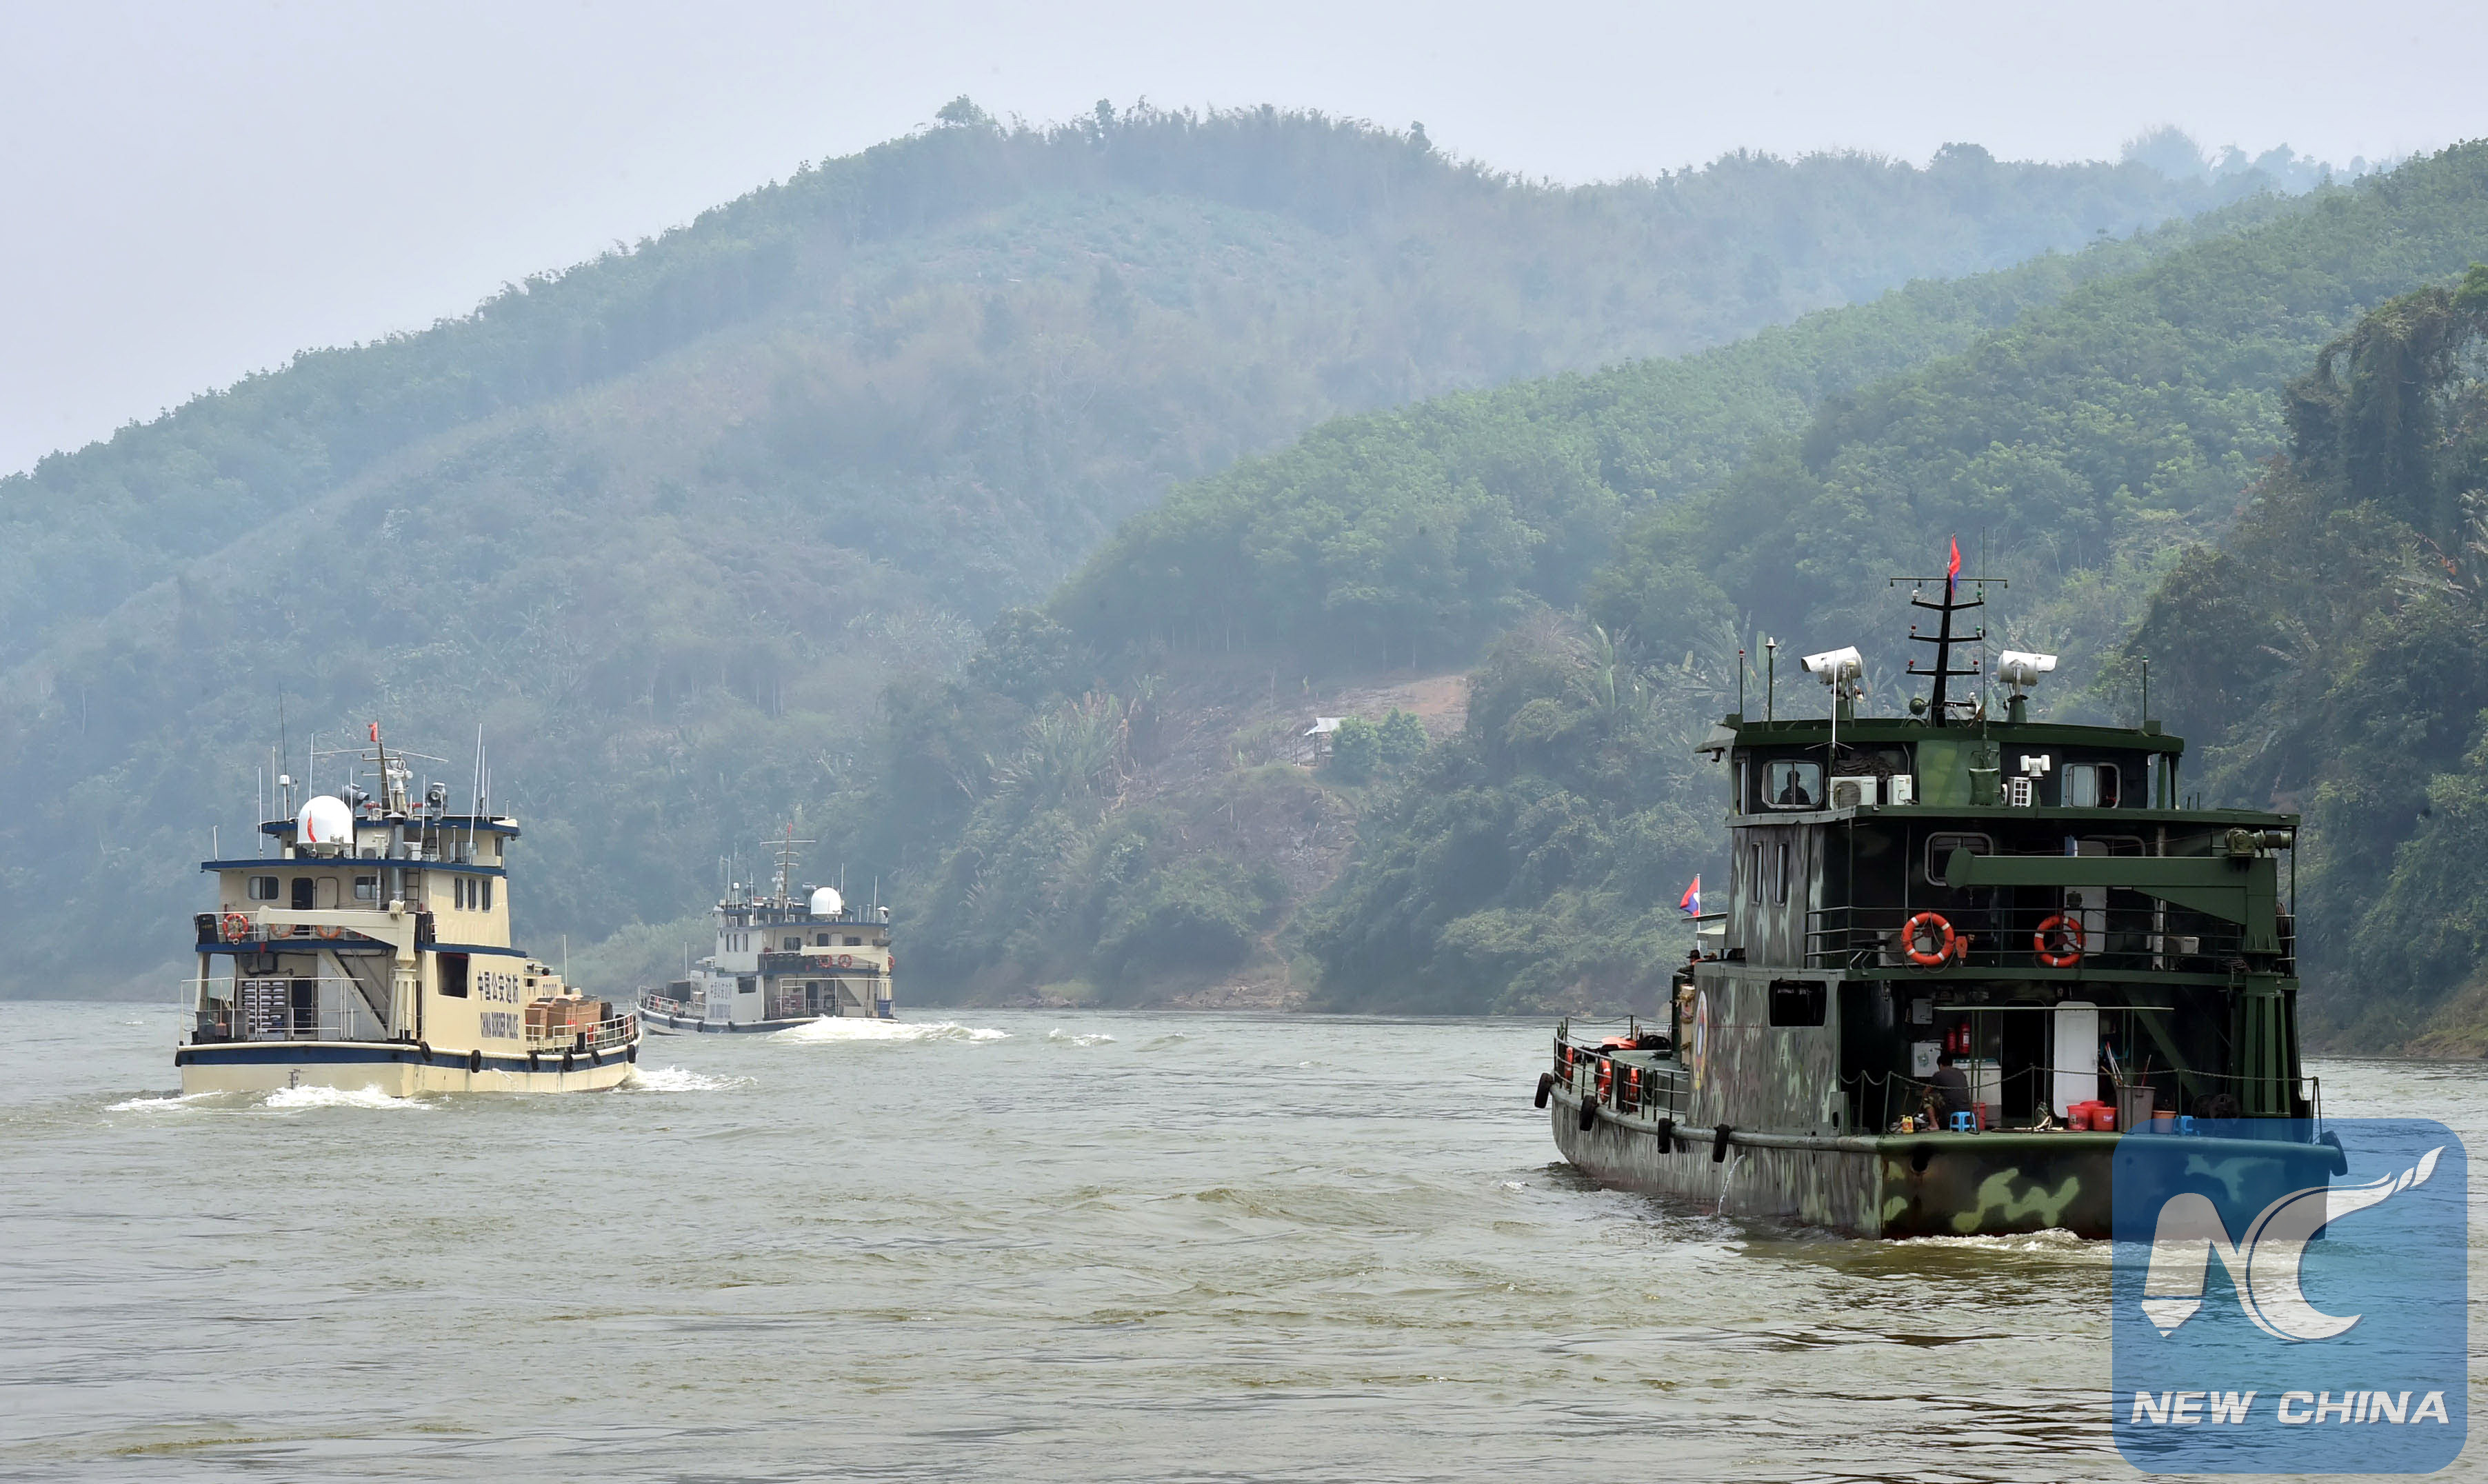 Joint patrol vessels with law enforcement personnel from China, Thailand, Laos and Myanmar, sail on the Lancang-Mekong River, March 17, 2015. (Xinhua/Chen Haining)